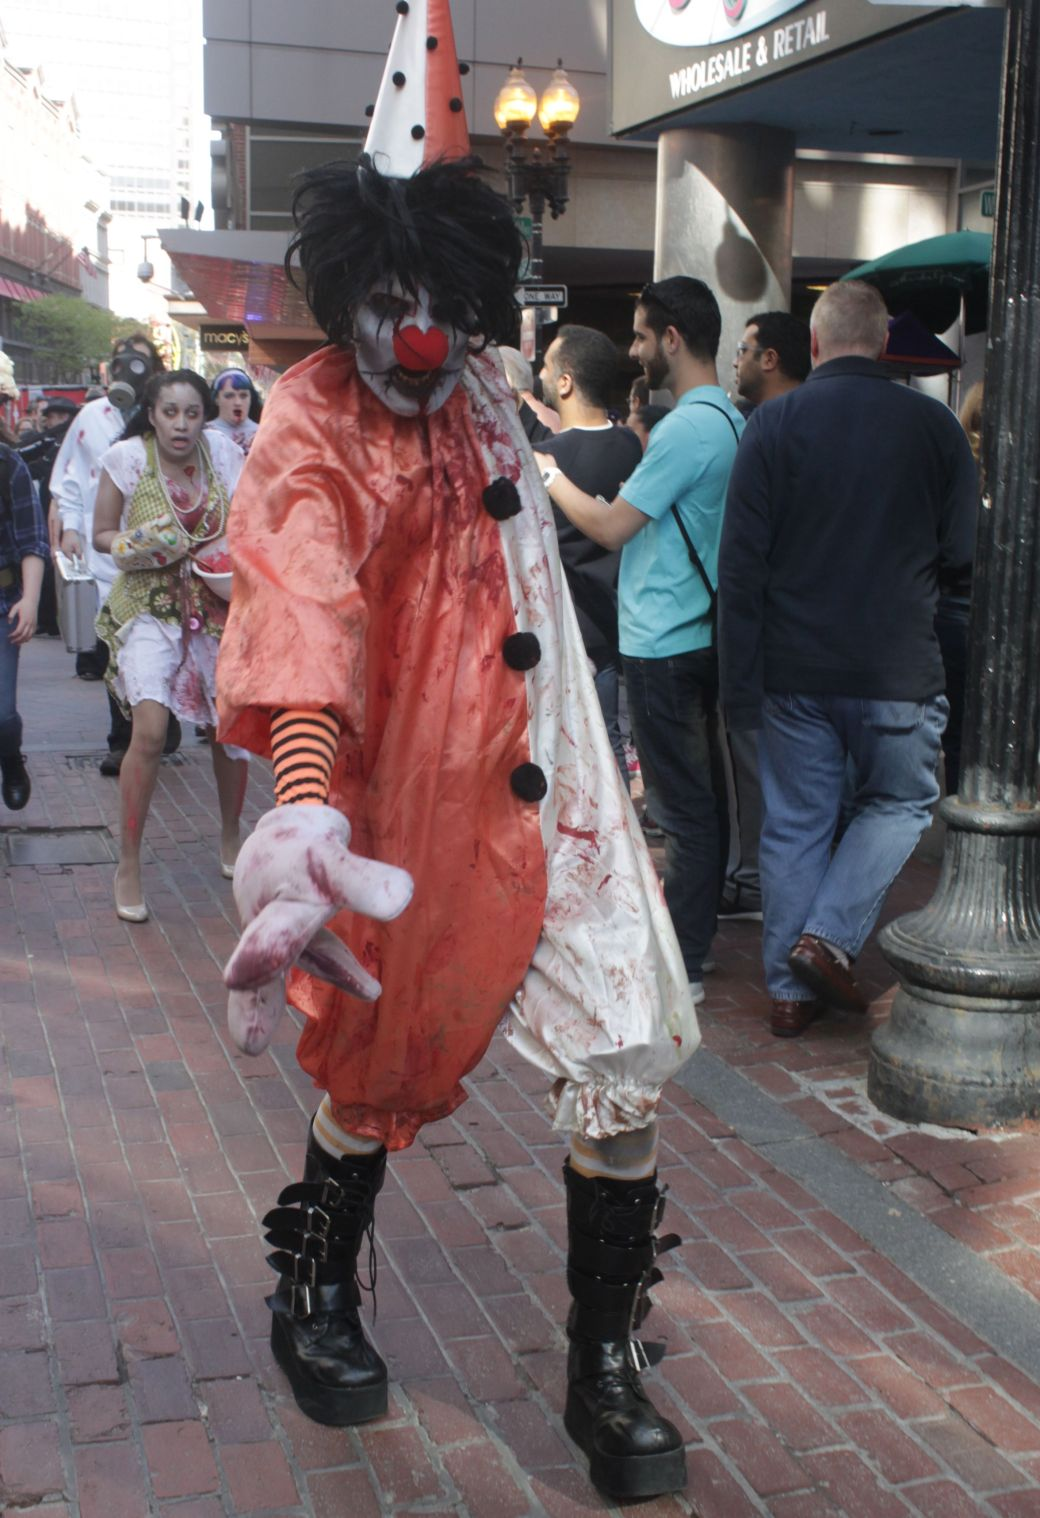 boston zombie walk may 17 21